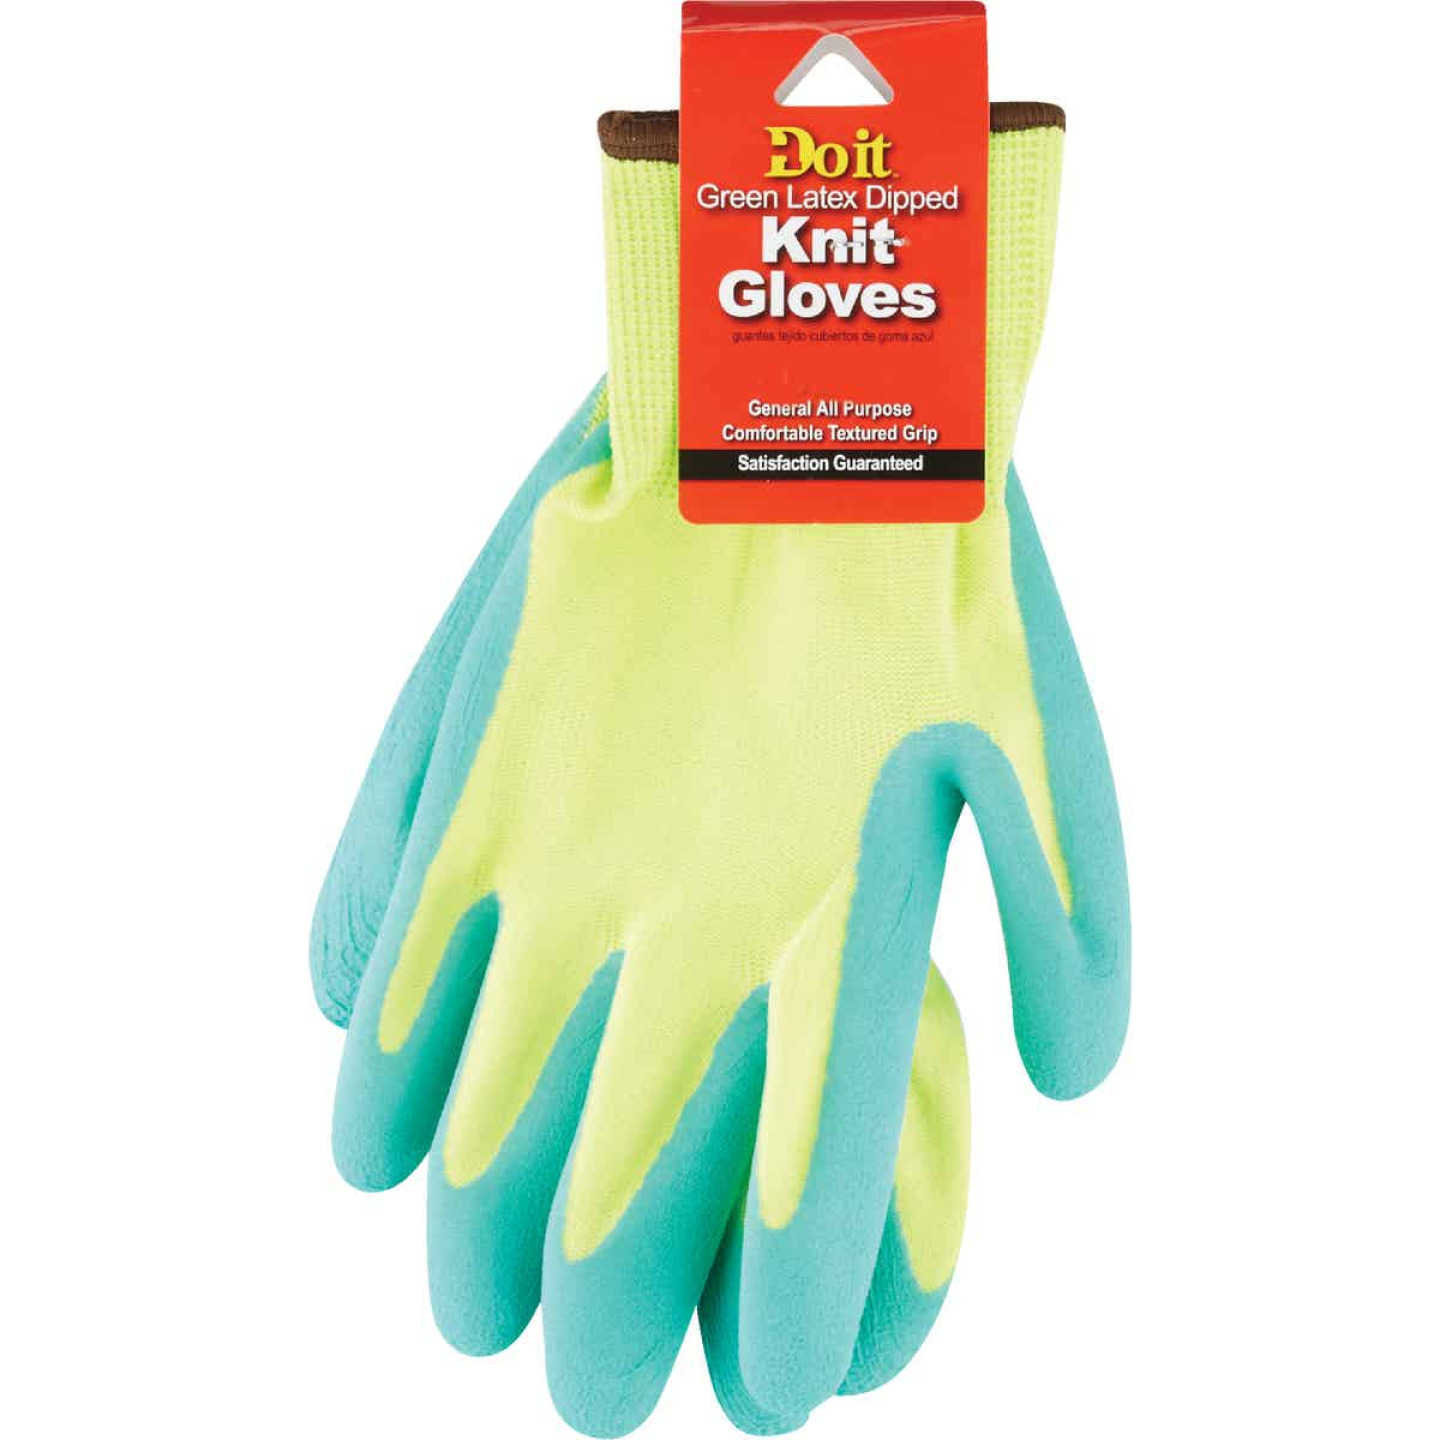 Do it Men's Small Grip Latex Coated Glove, Green Image 2